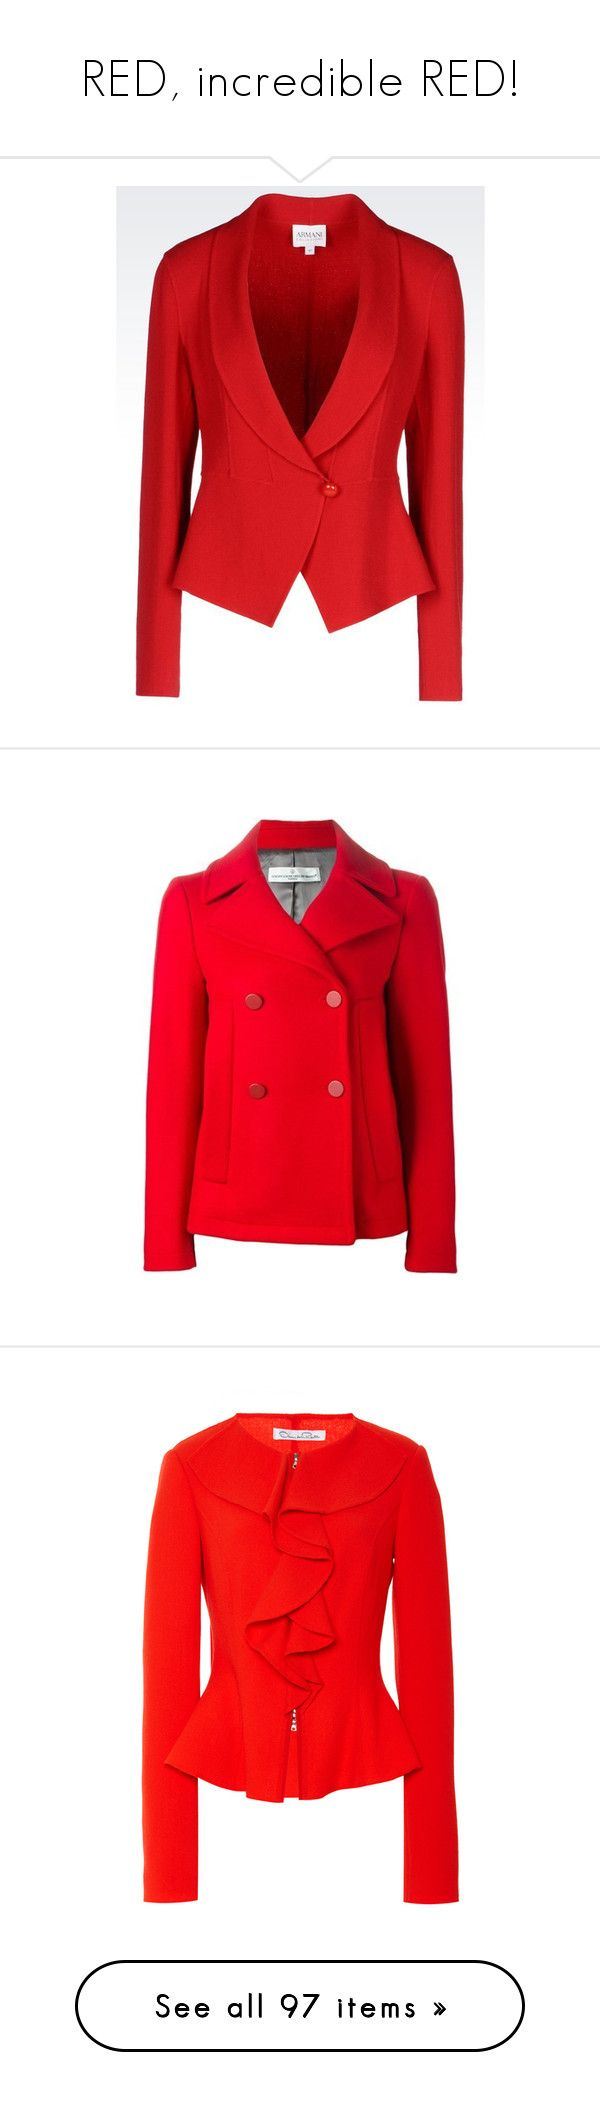 """""""RED, incredible RED!"""" by lorika-borika on Polyvore featuring outerwear, jackets, blazers, red, veste, crepe blazer, red blazer jacket, collar jacket, armani collezioni jacket и red blazers"""